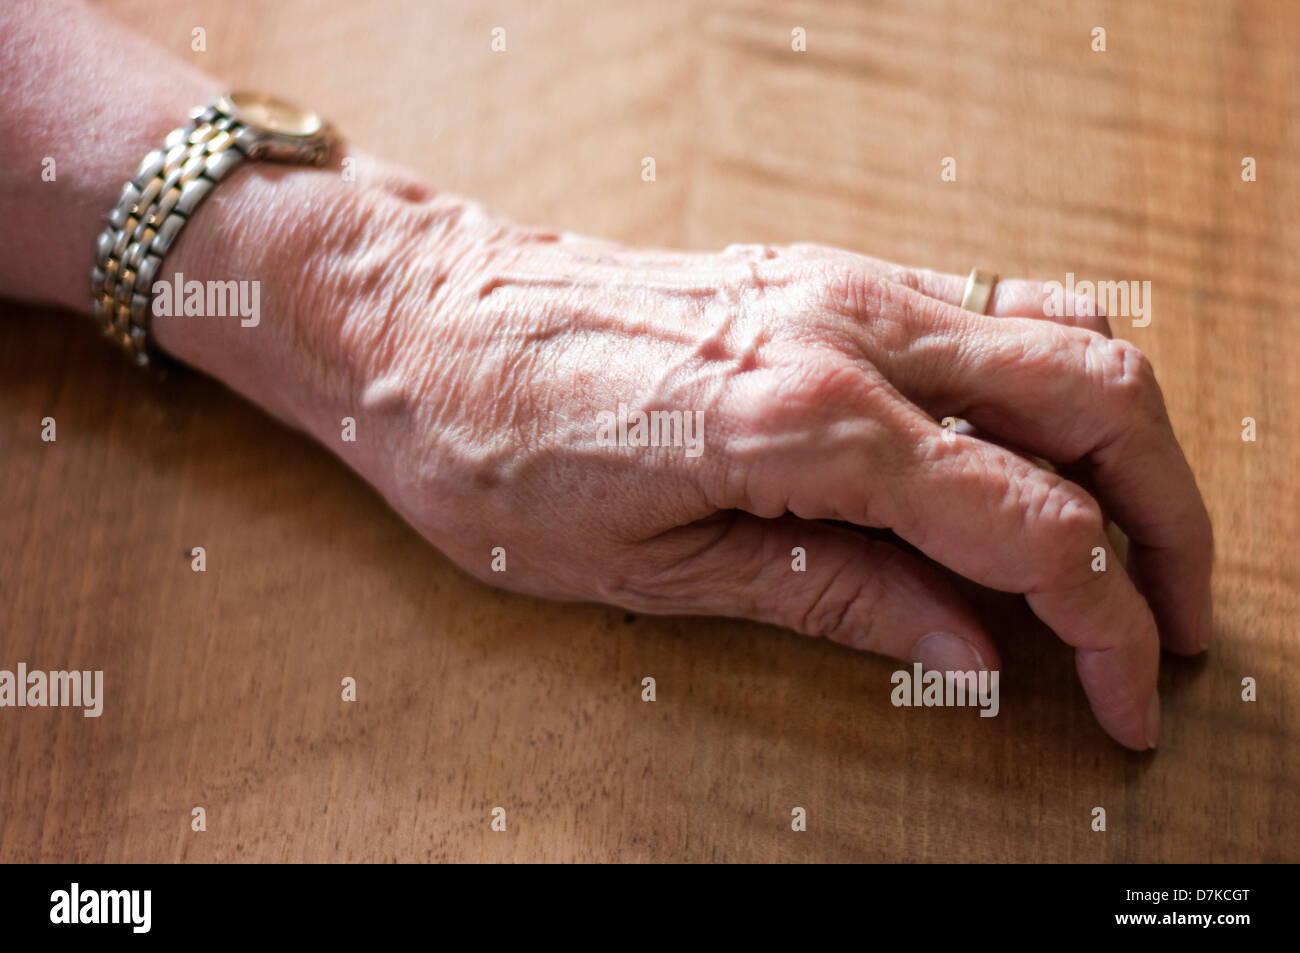 Germany, Hesse, Frankfurt, Human hand on table - Stock Image